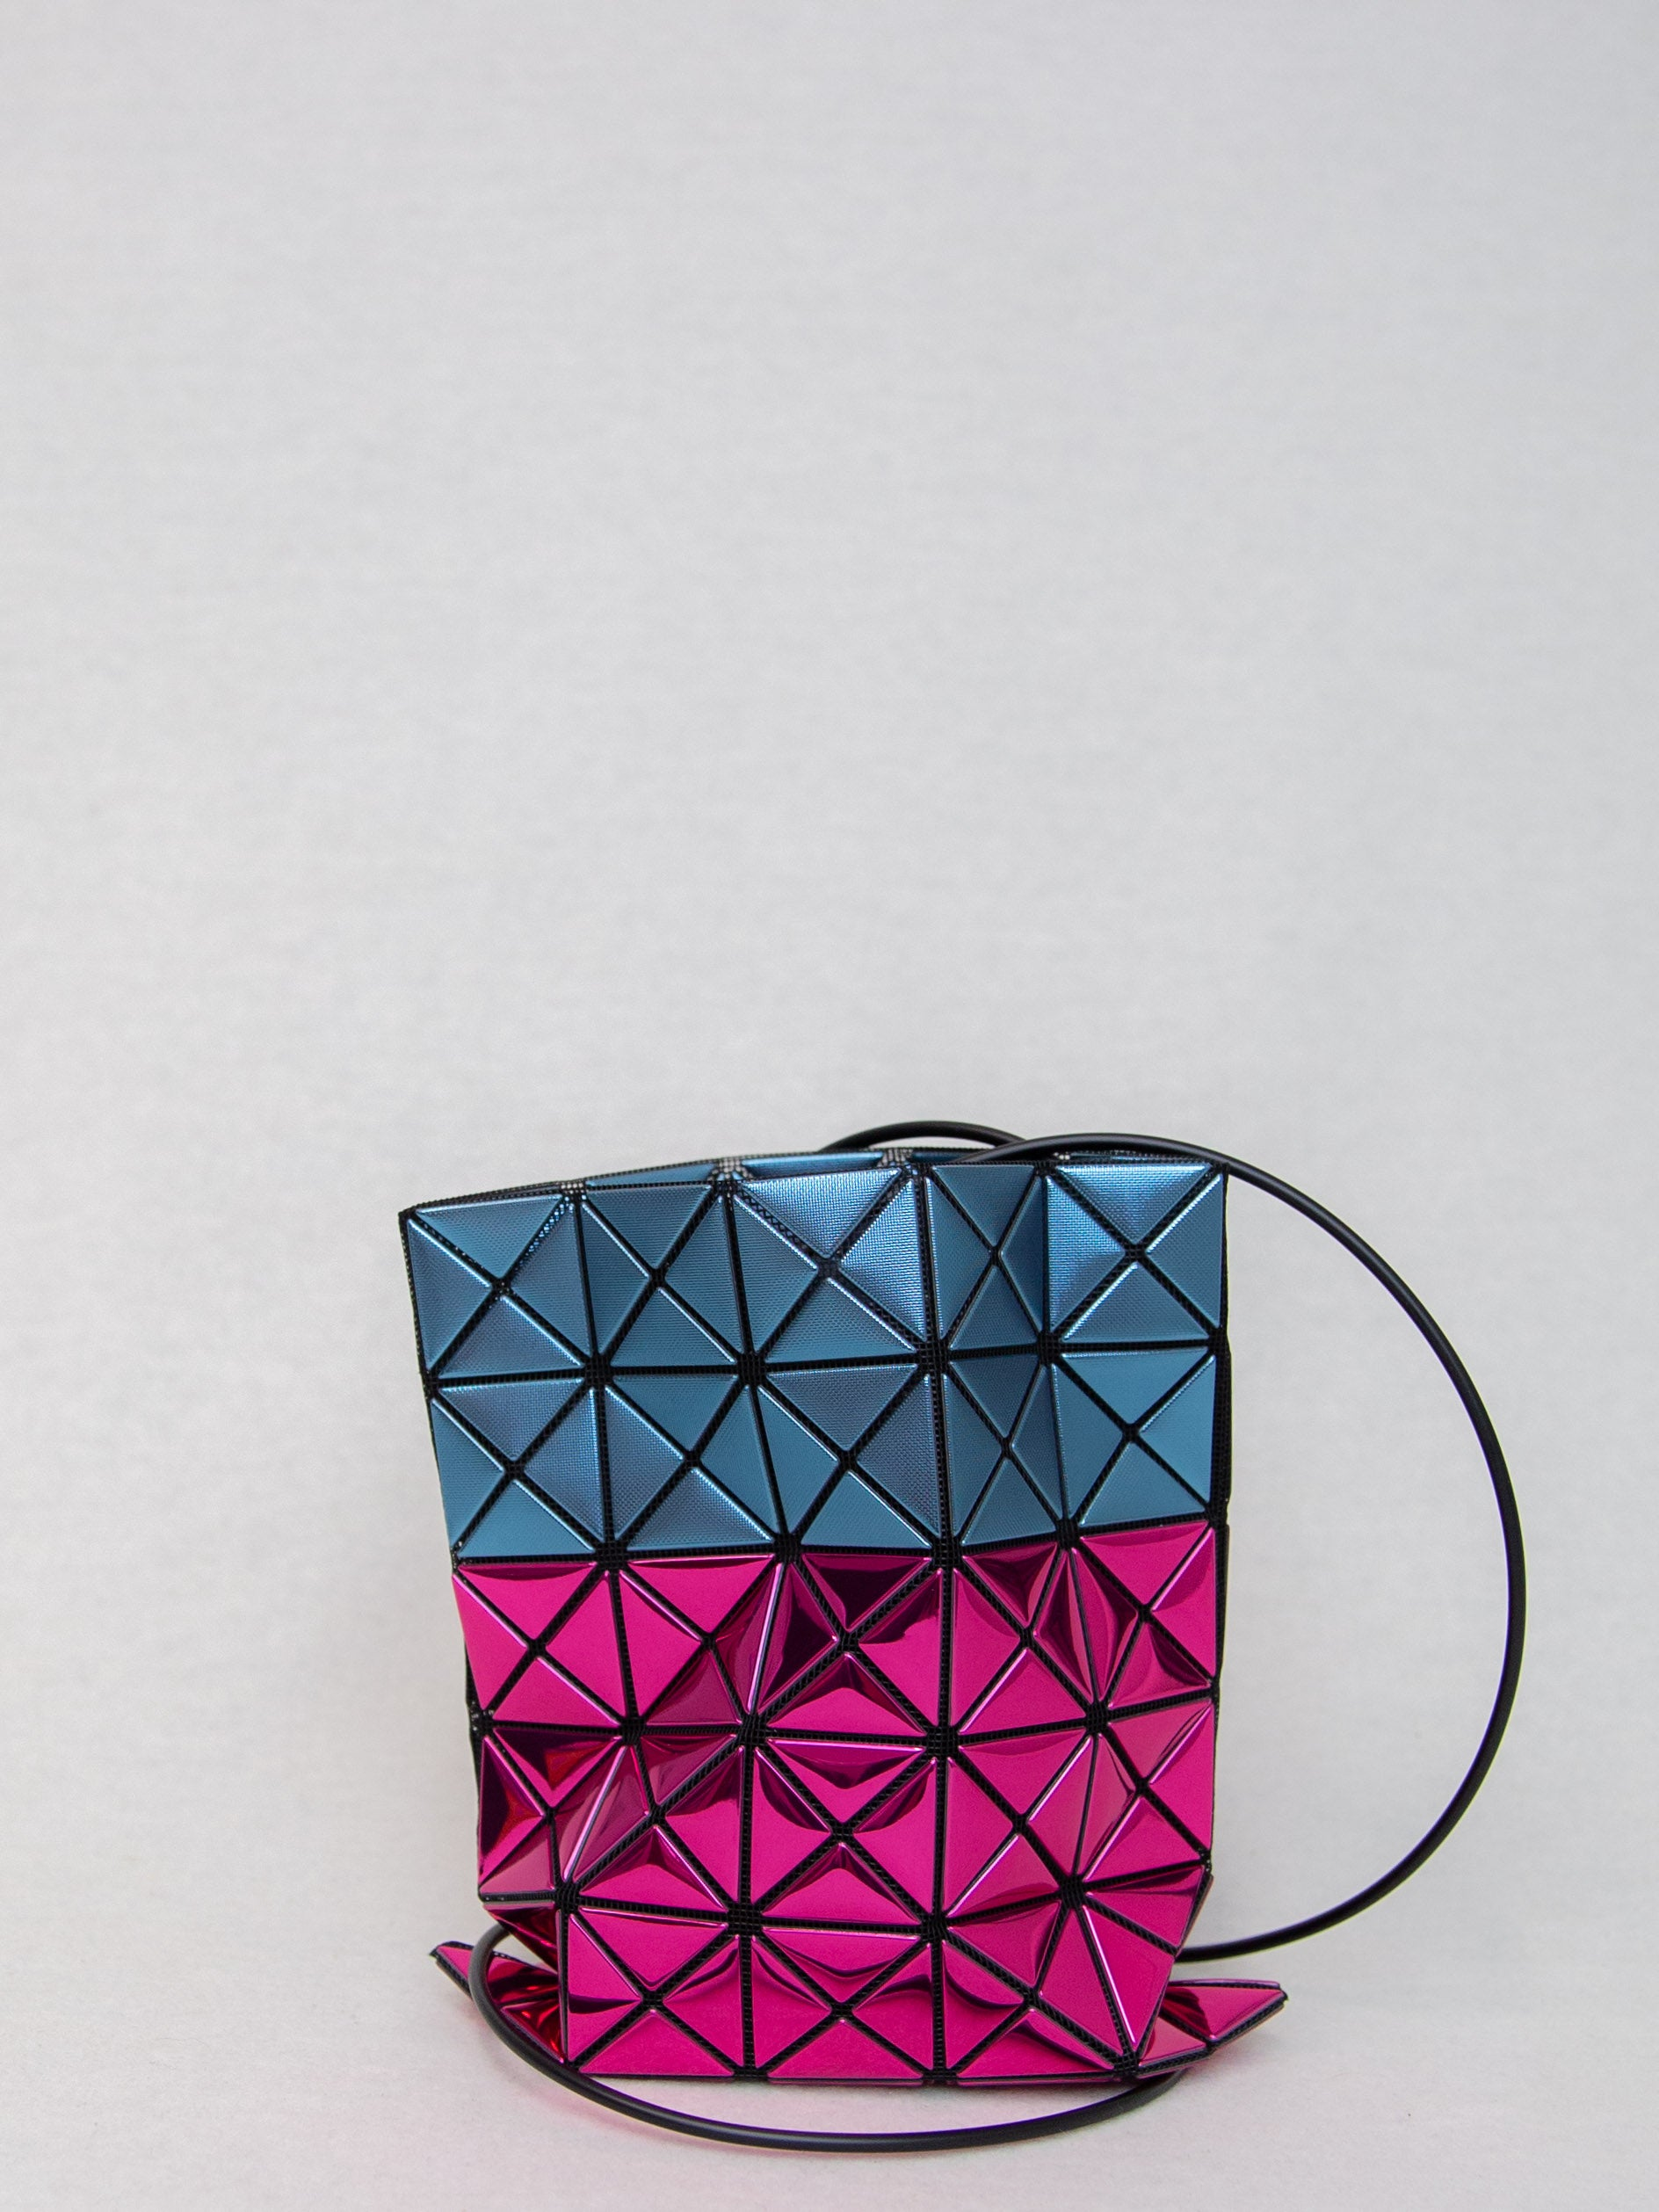 BAO BAO ISSEY MIYAKE Platinum Stardust Crossbody Bag – Shifting Worlds 3698fbb96b3be